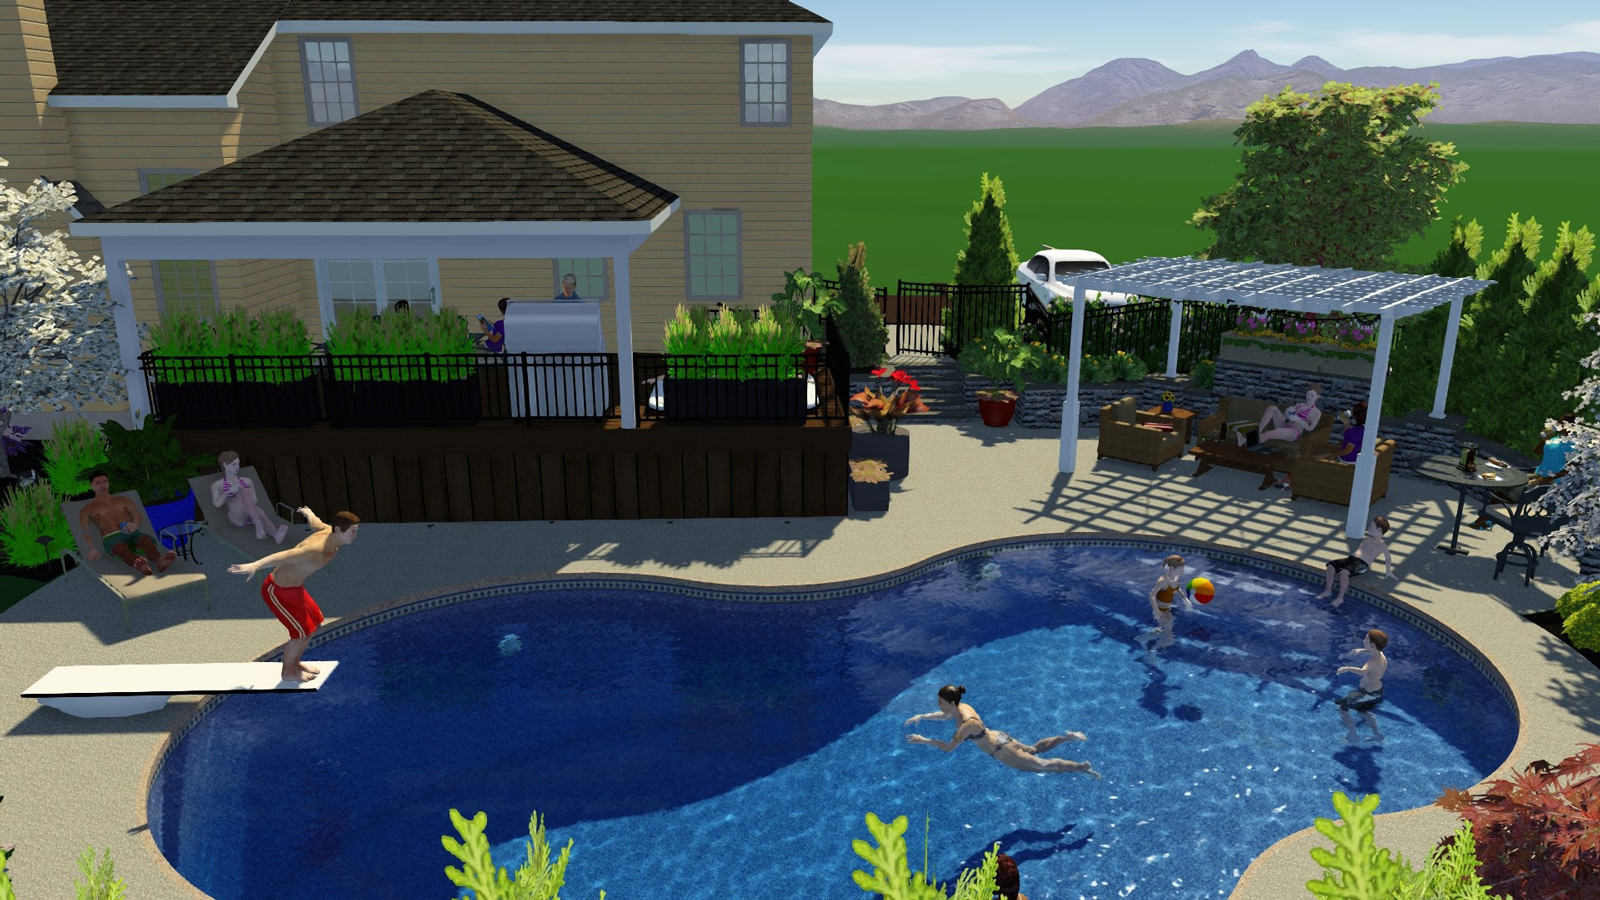 Macungie Residence « MasterPLAN Outdoor Living on Masterplan Outdoor Living id=47977